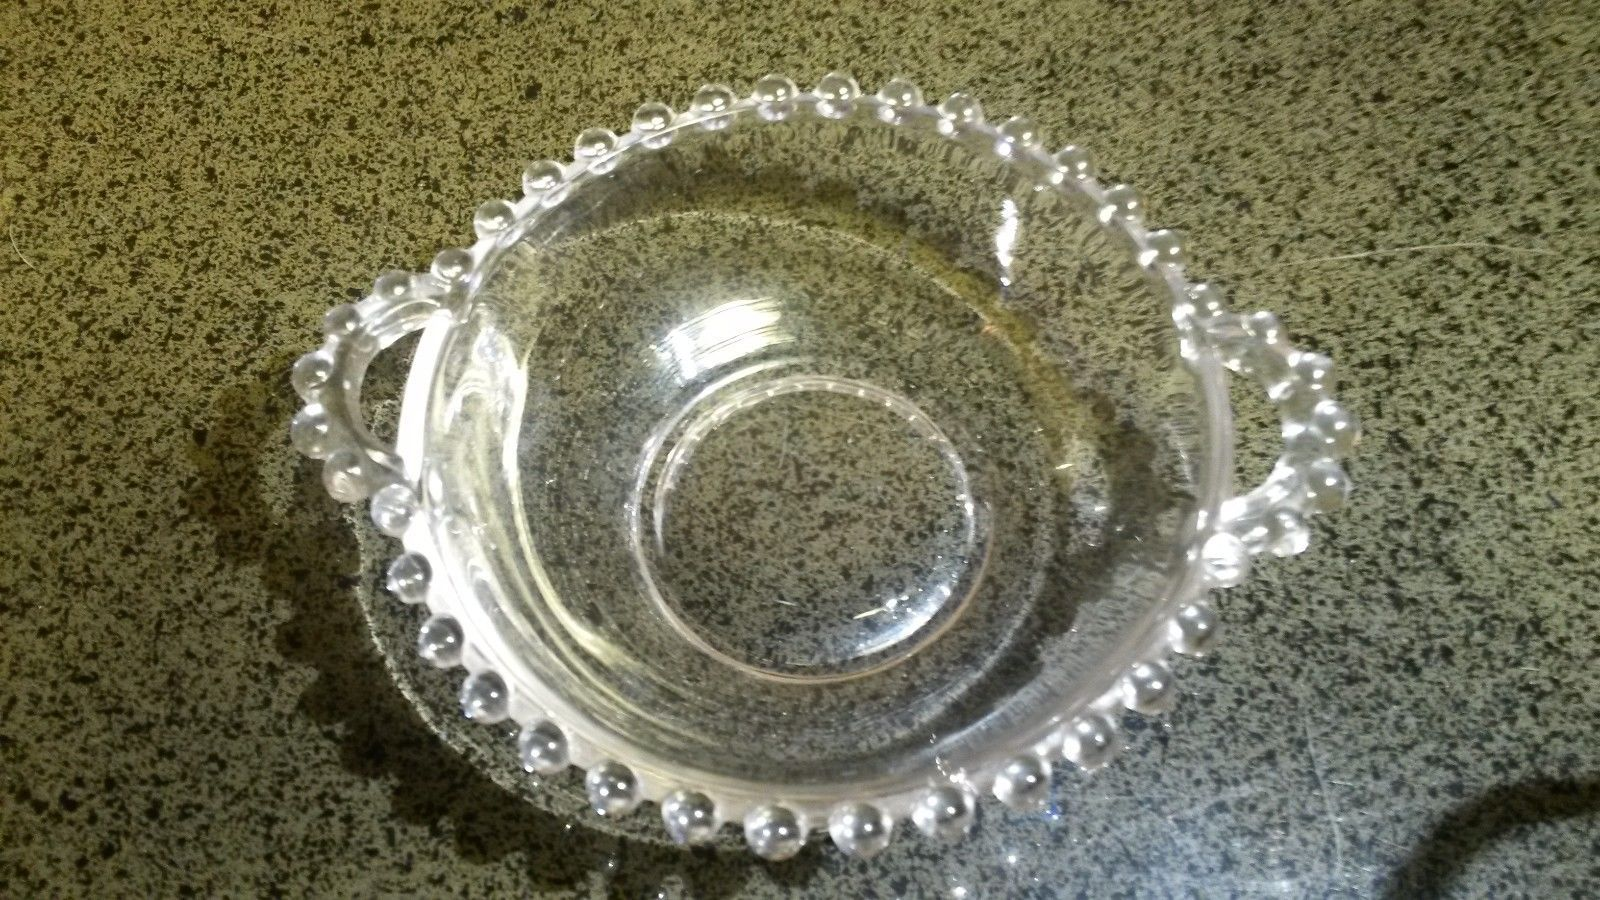 Candlewick Beaded Pattern Handled Candy Dish - Indiana Glass Co 1940s